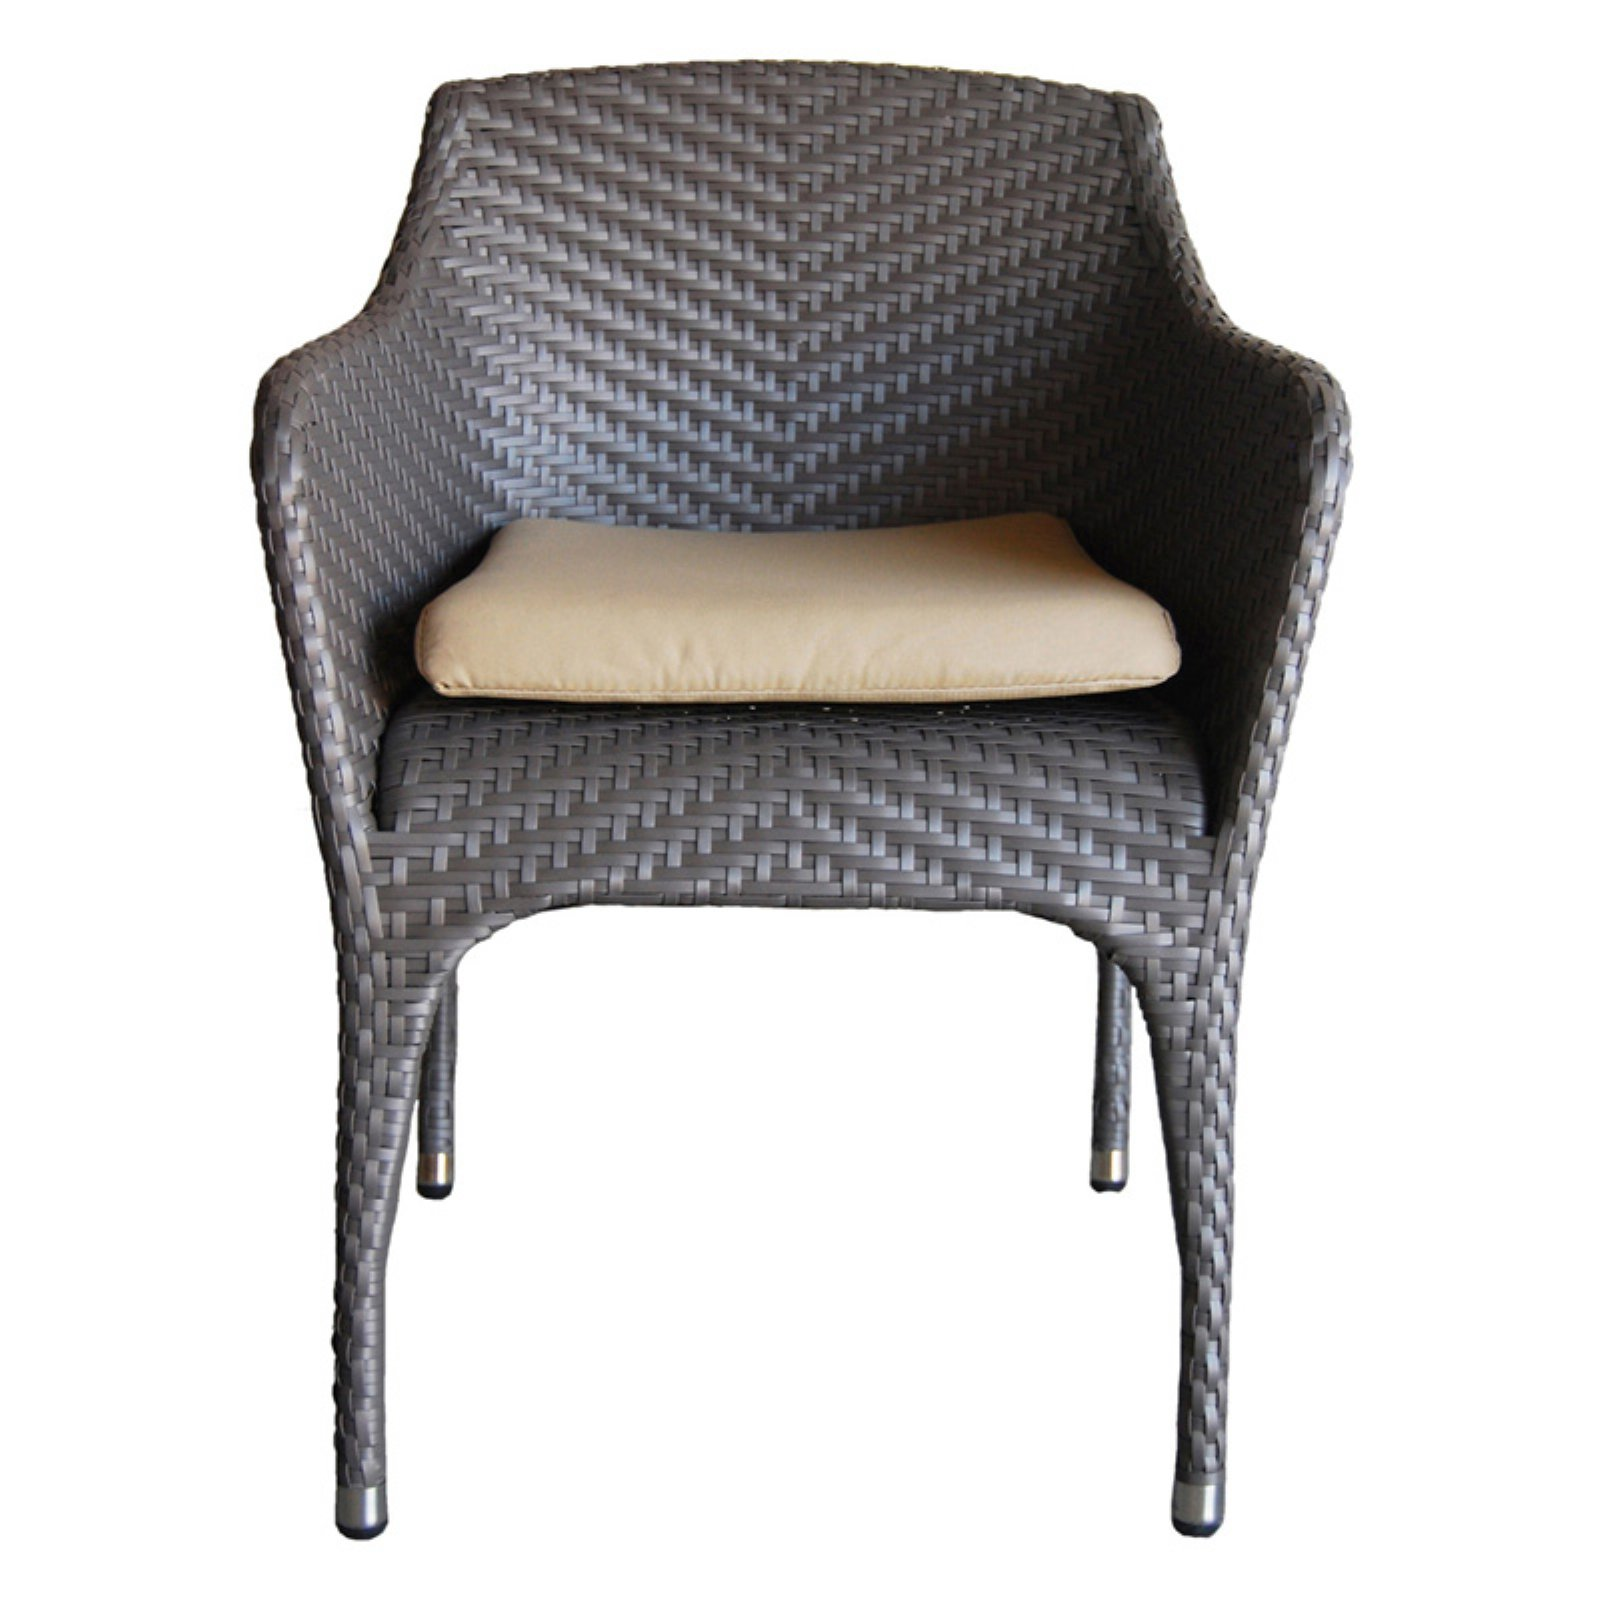 100 Essentials Rivage Wicker Patio Dining Armchair by Overstock